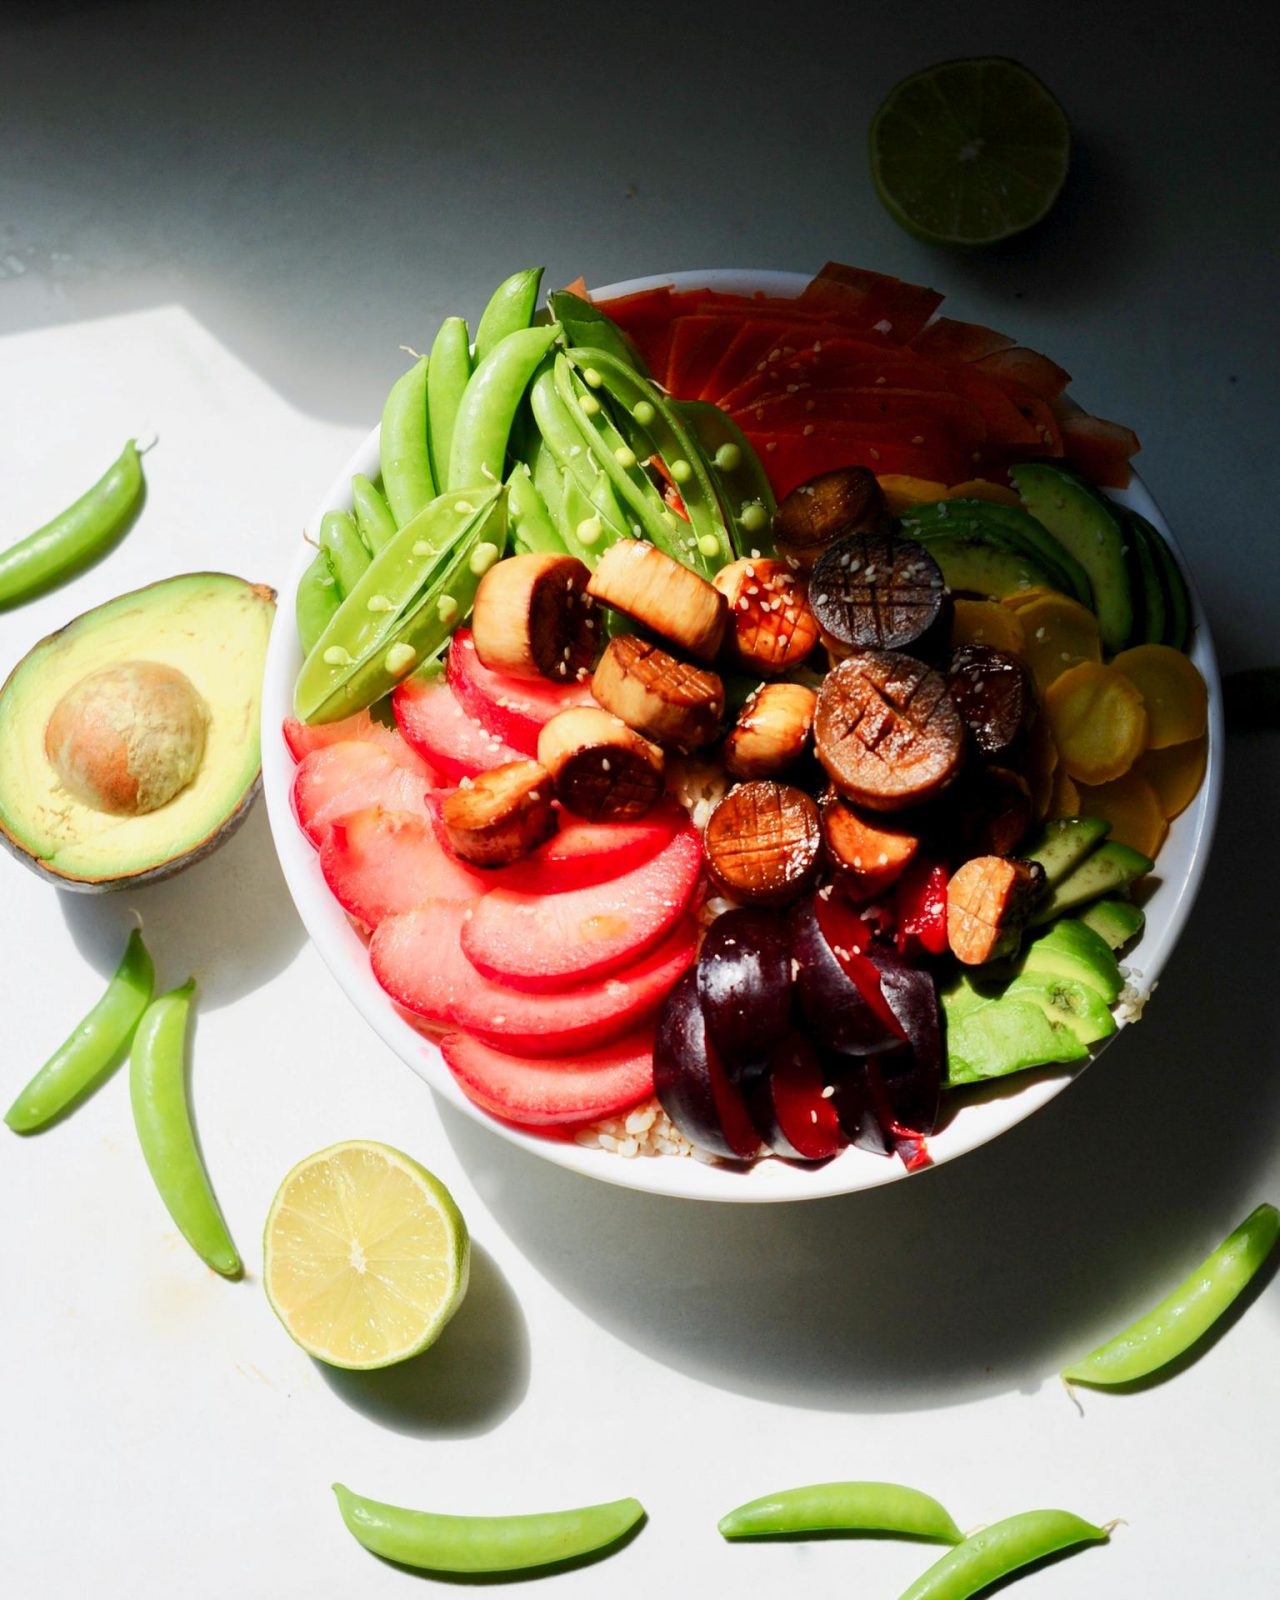 A bowl filled with Plant based Vegan Scallop Poké with Sesame Lime Sauce